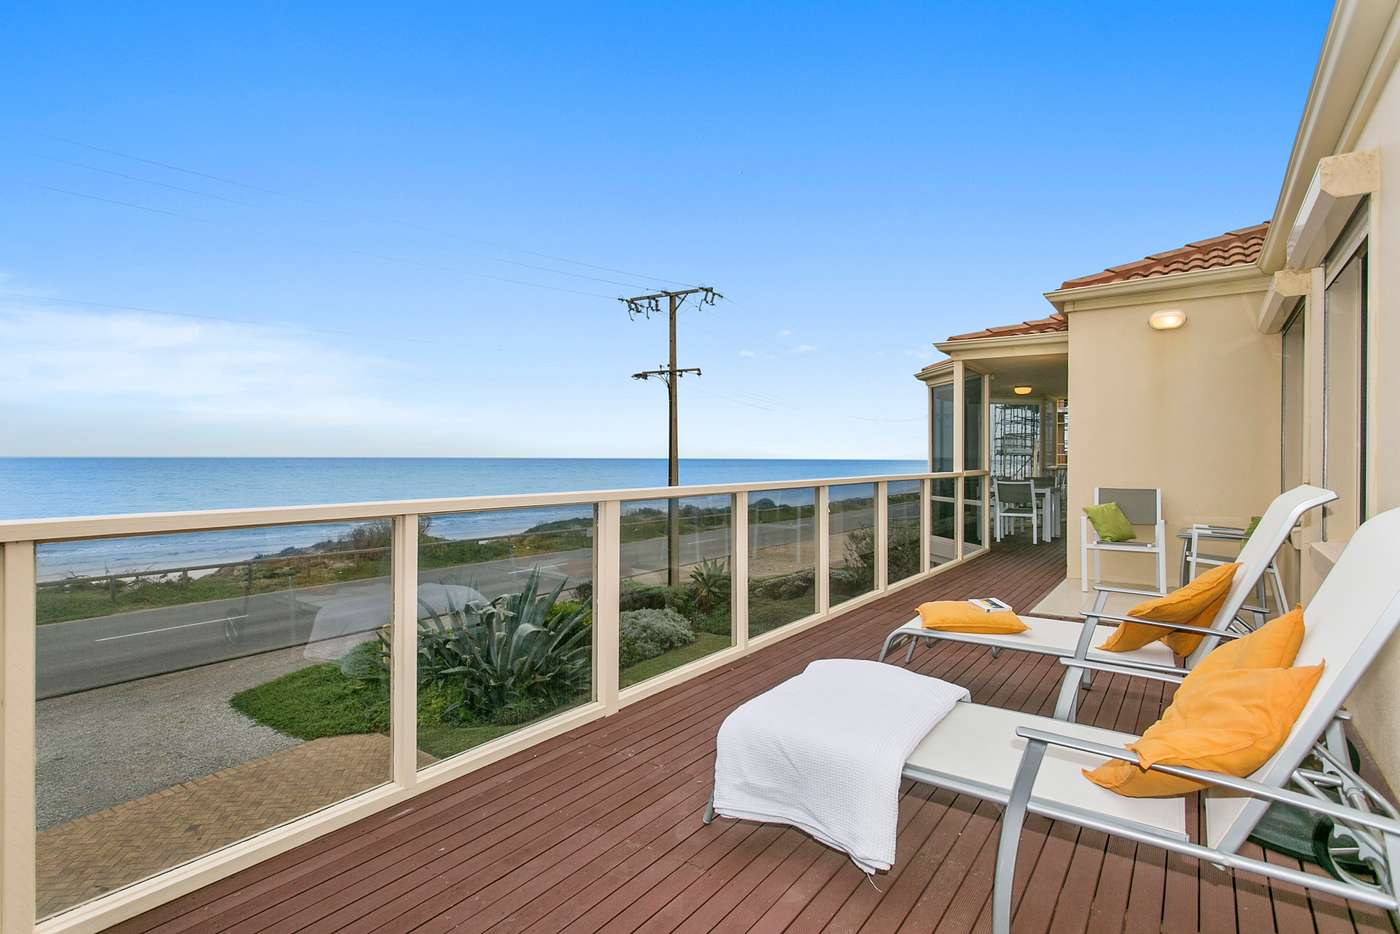 Main view of Homely house listing, 253 Esplanade, Aldinga Beach SA 5173